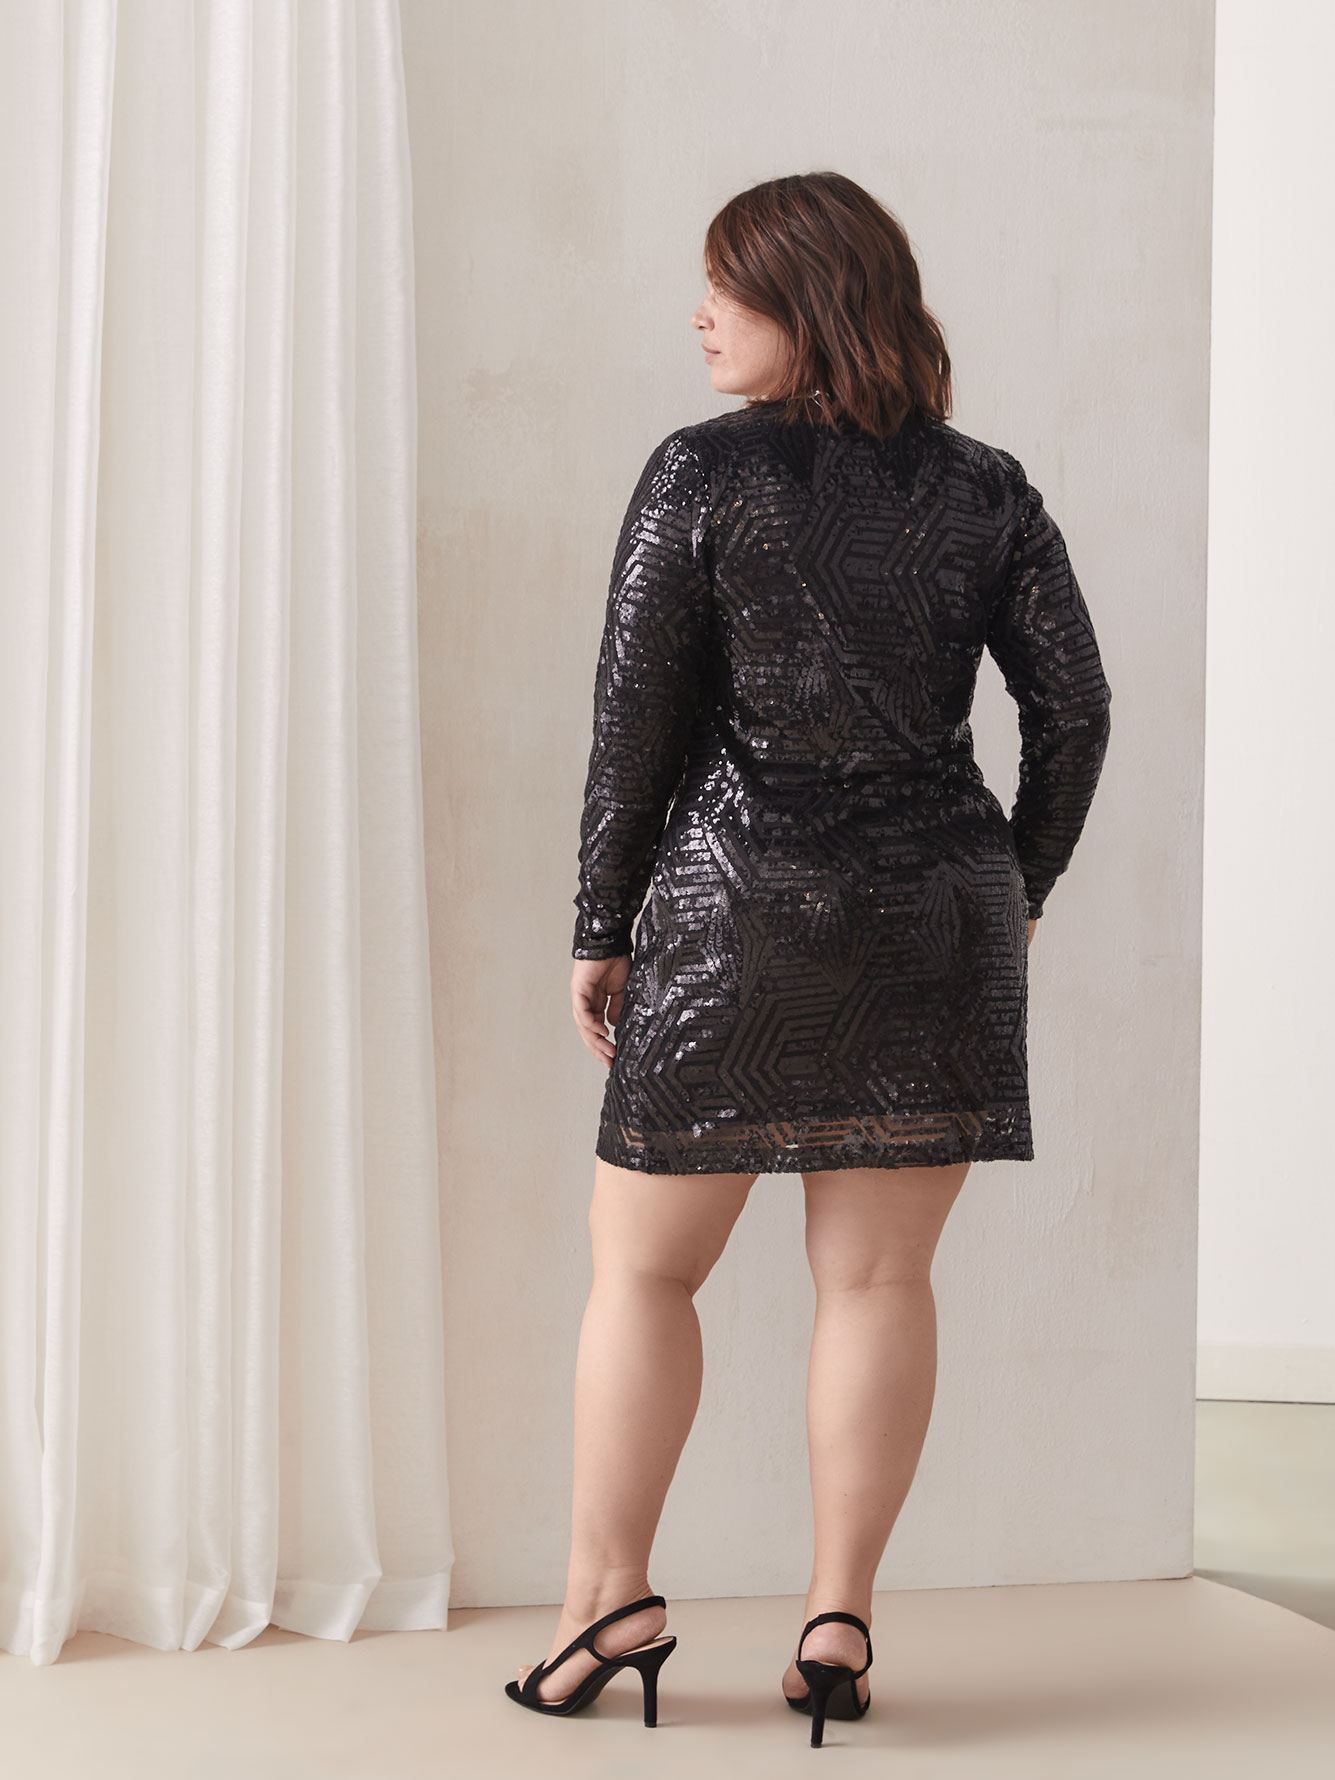 Short Sequin Dress - City Chic